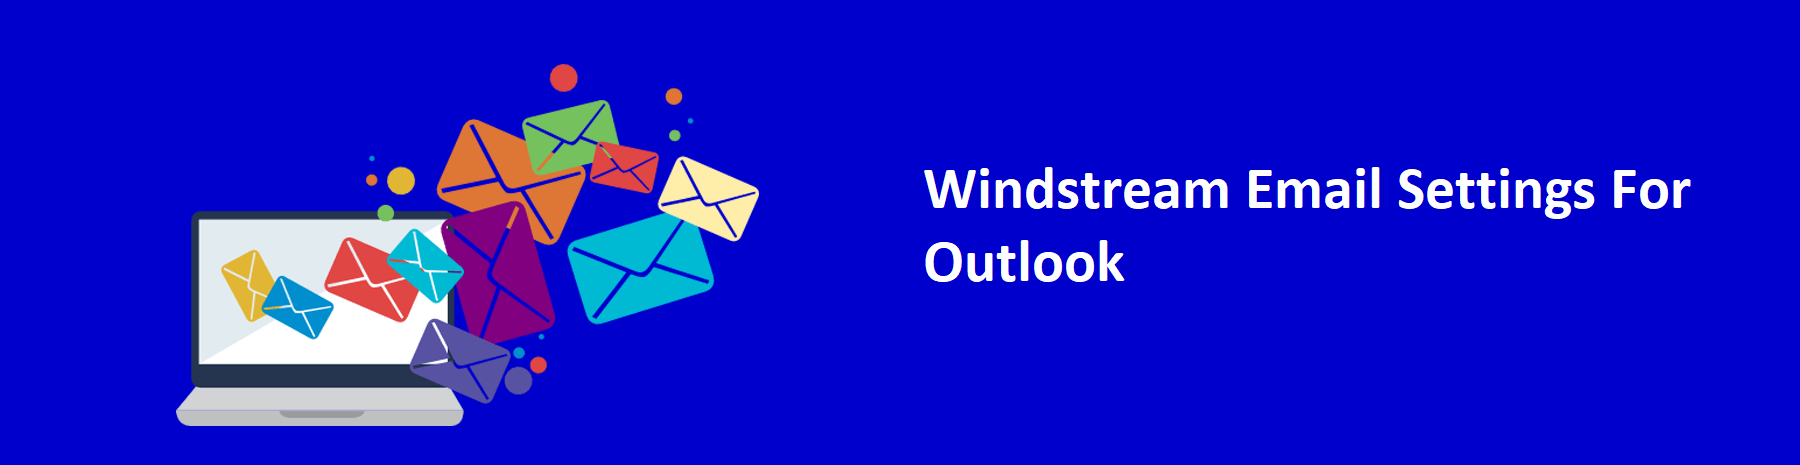 Windstream Email Settings Outlook 2007 And 2013